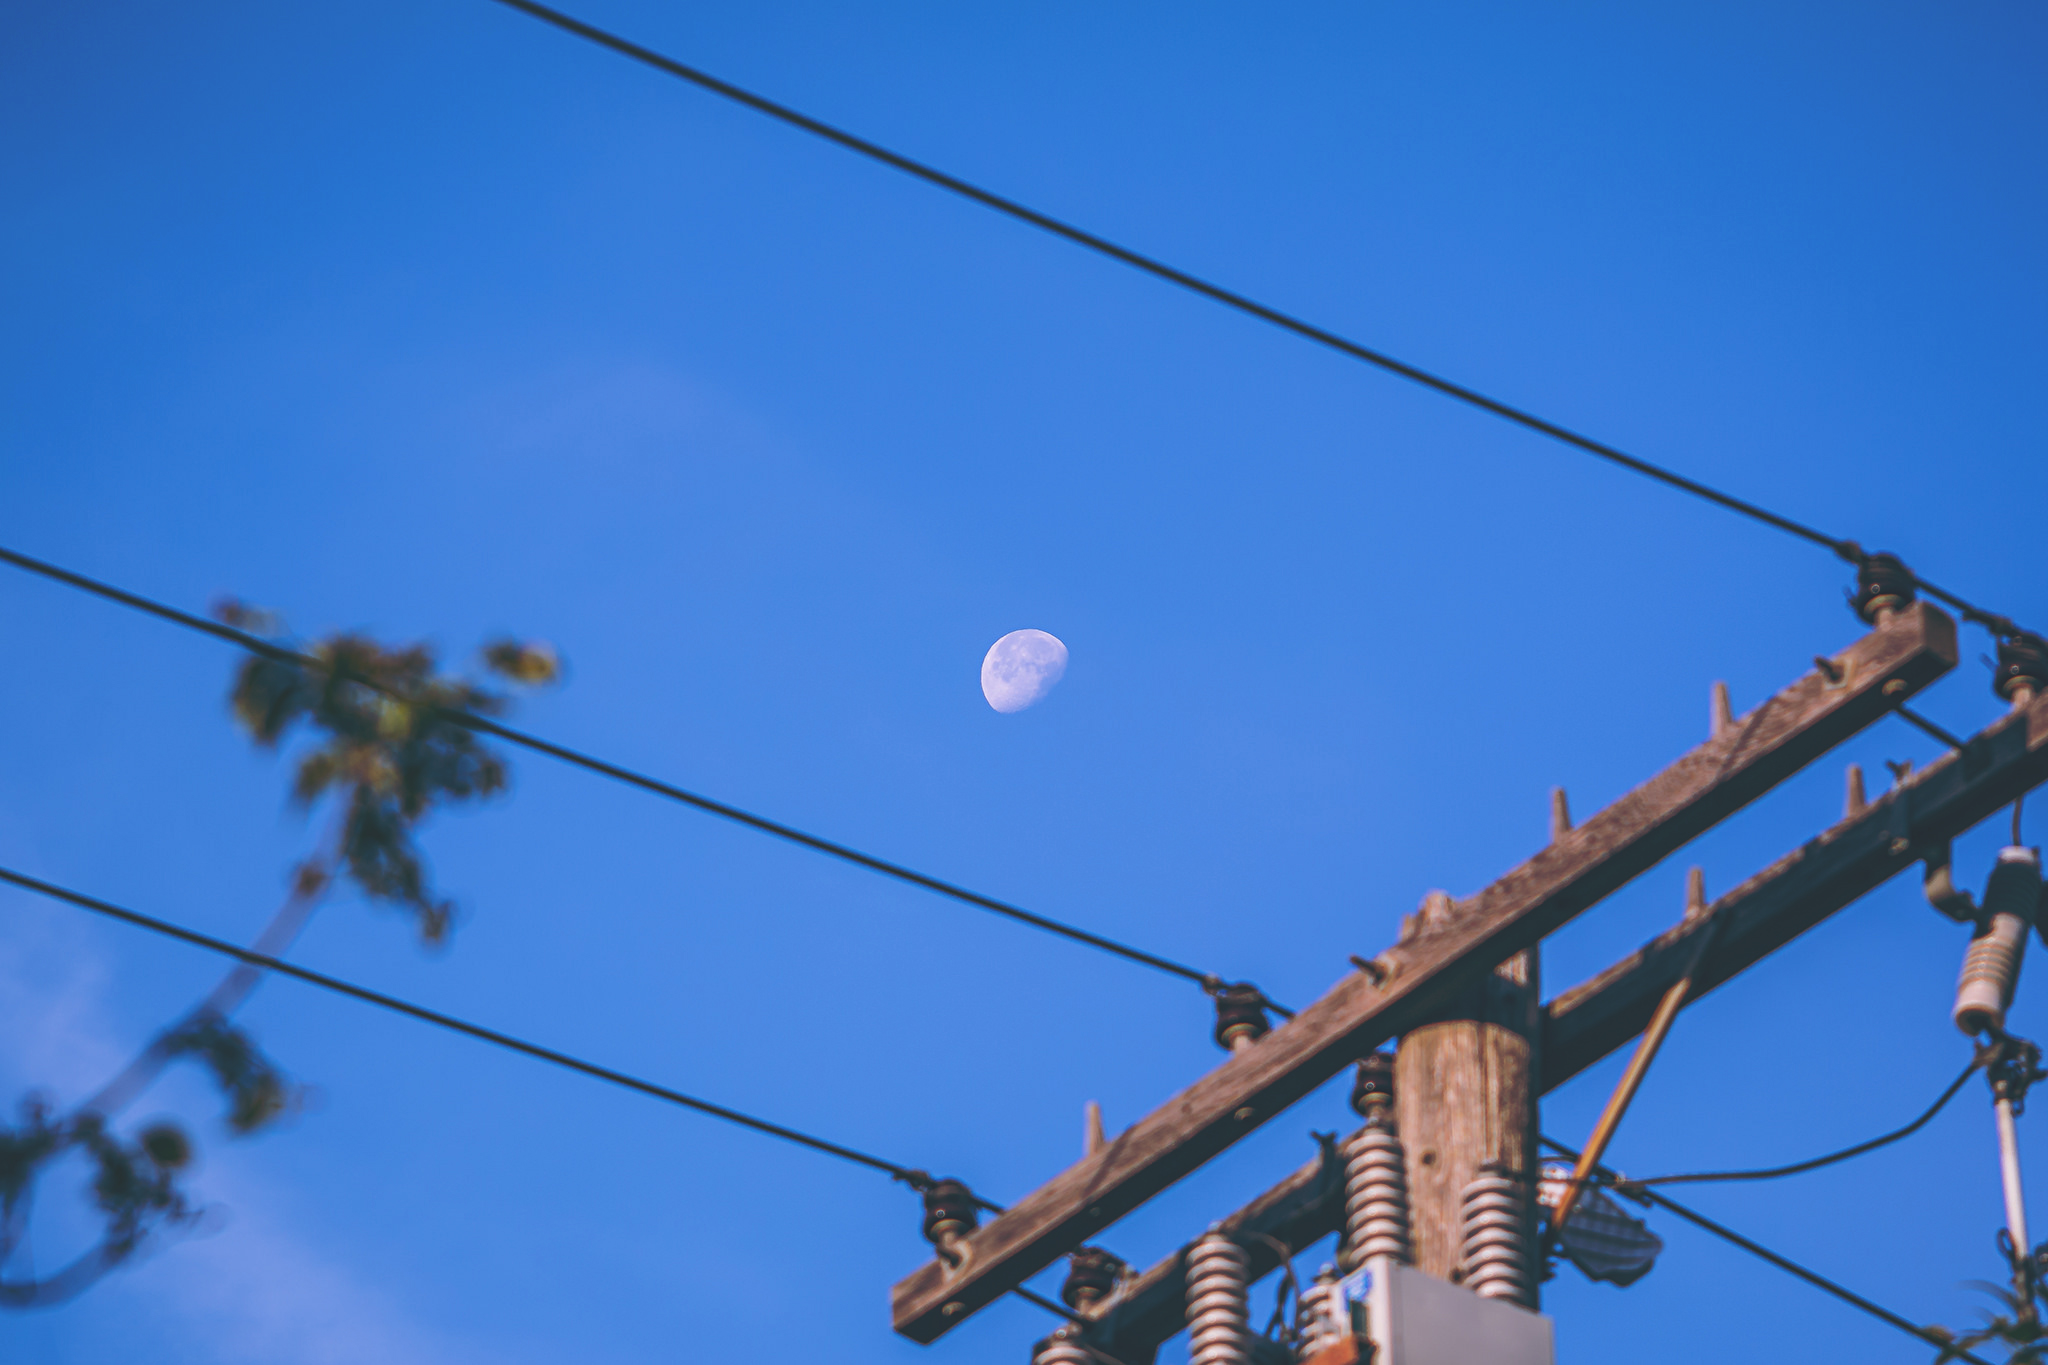 Shooting the moon in the morning, on the way to work in downtown REgina